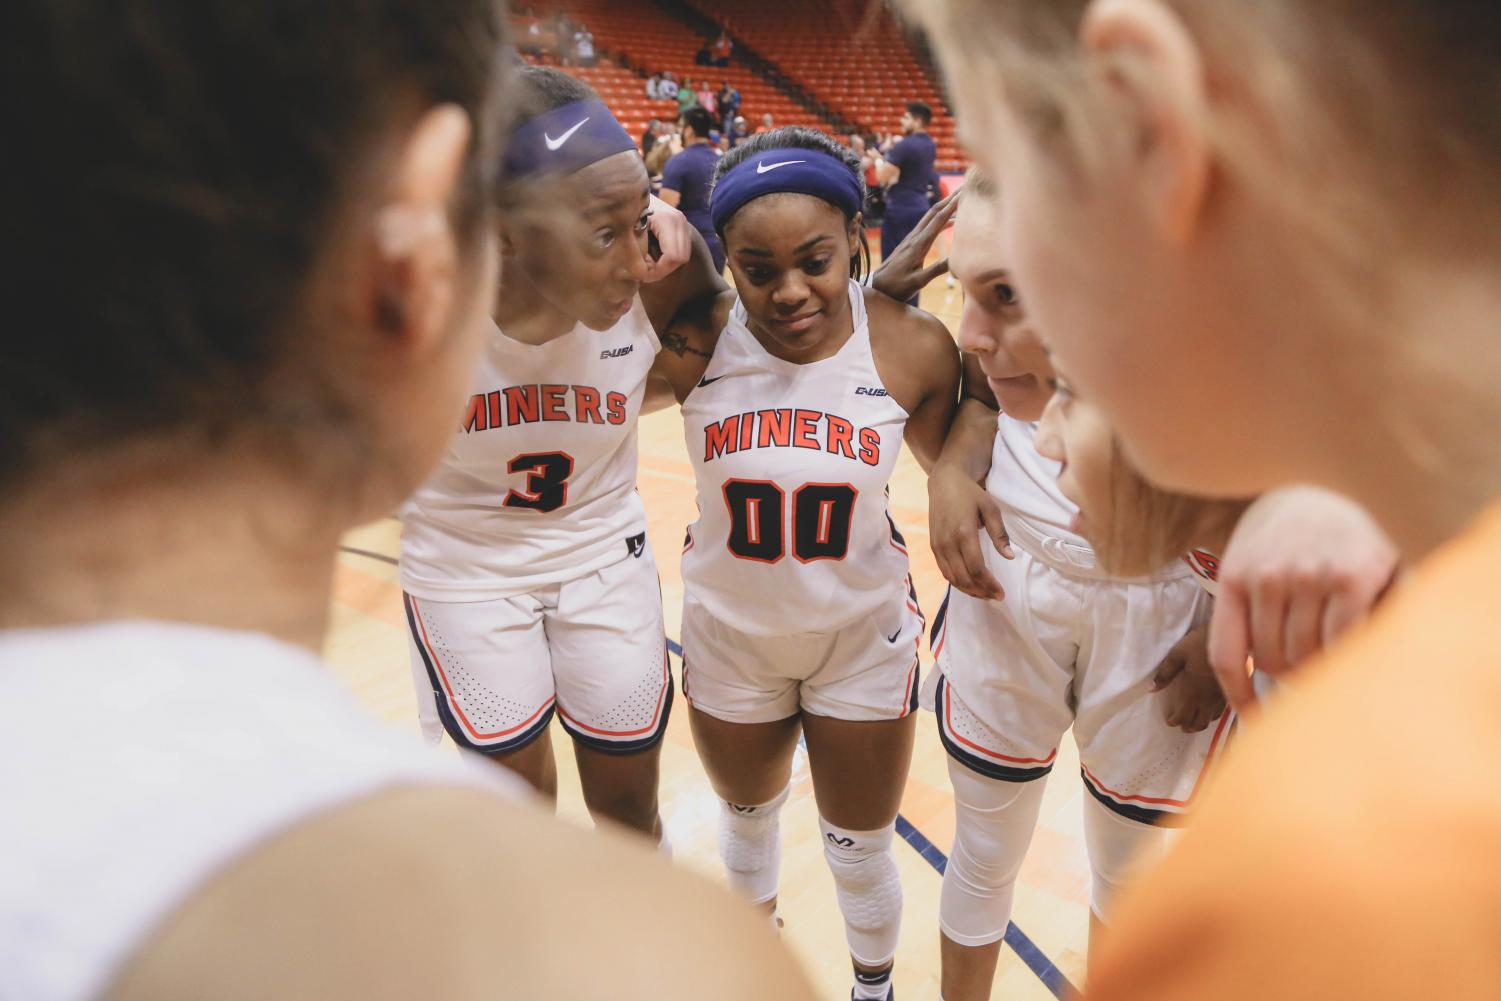 The+Lady+Miners+discuss+the+game+plan+pre-game+at+a+game+against+the+NMSU+Aggies+on+Saturday%2C+Nov.+17.+